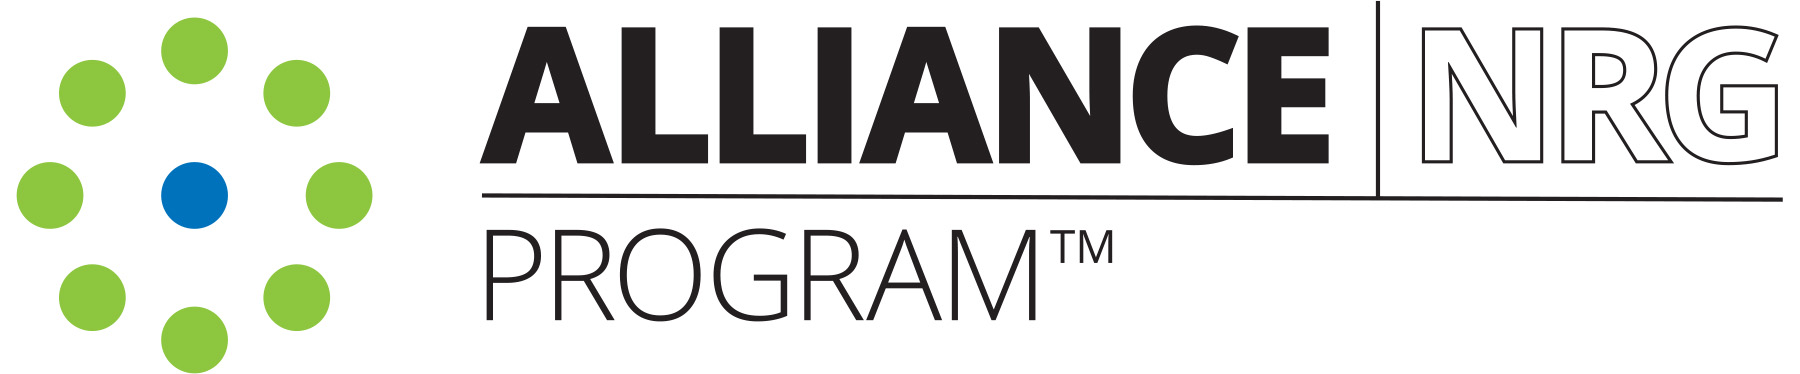 AllianceNRG Logo